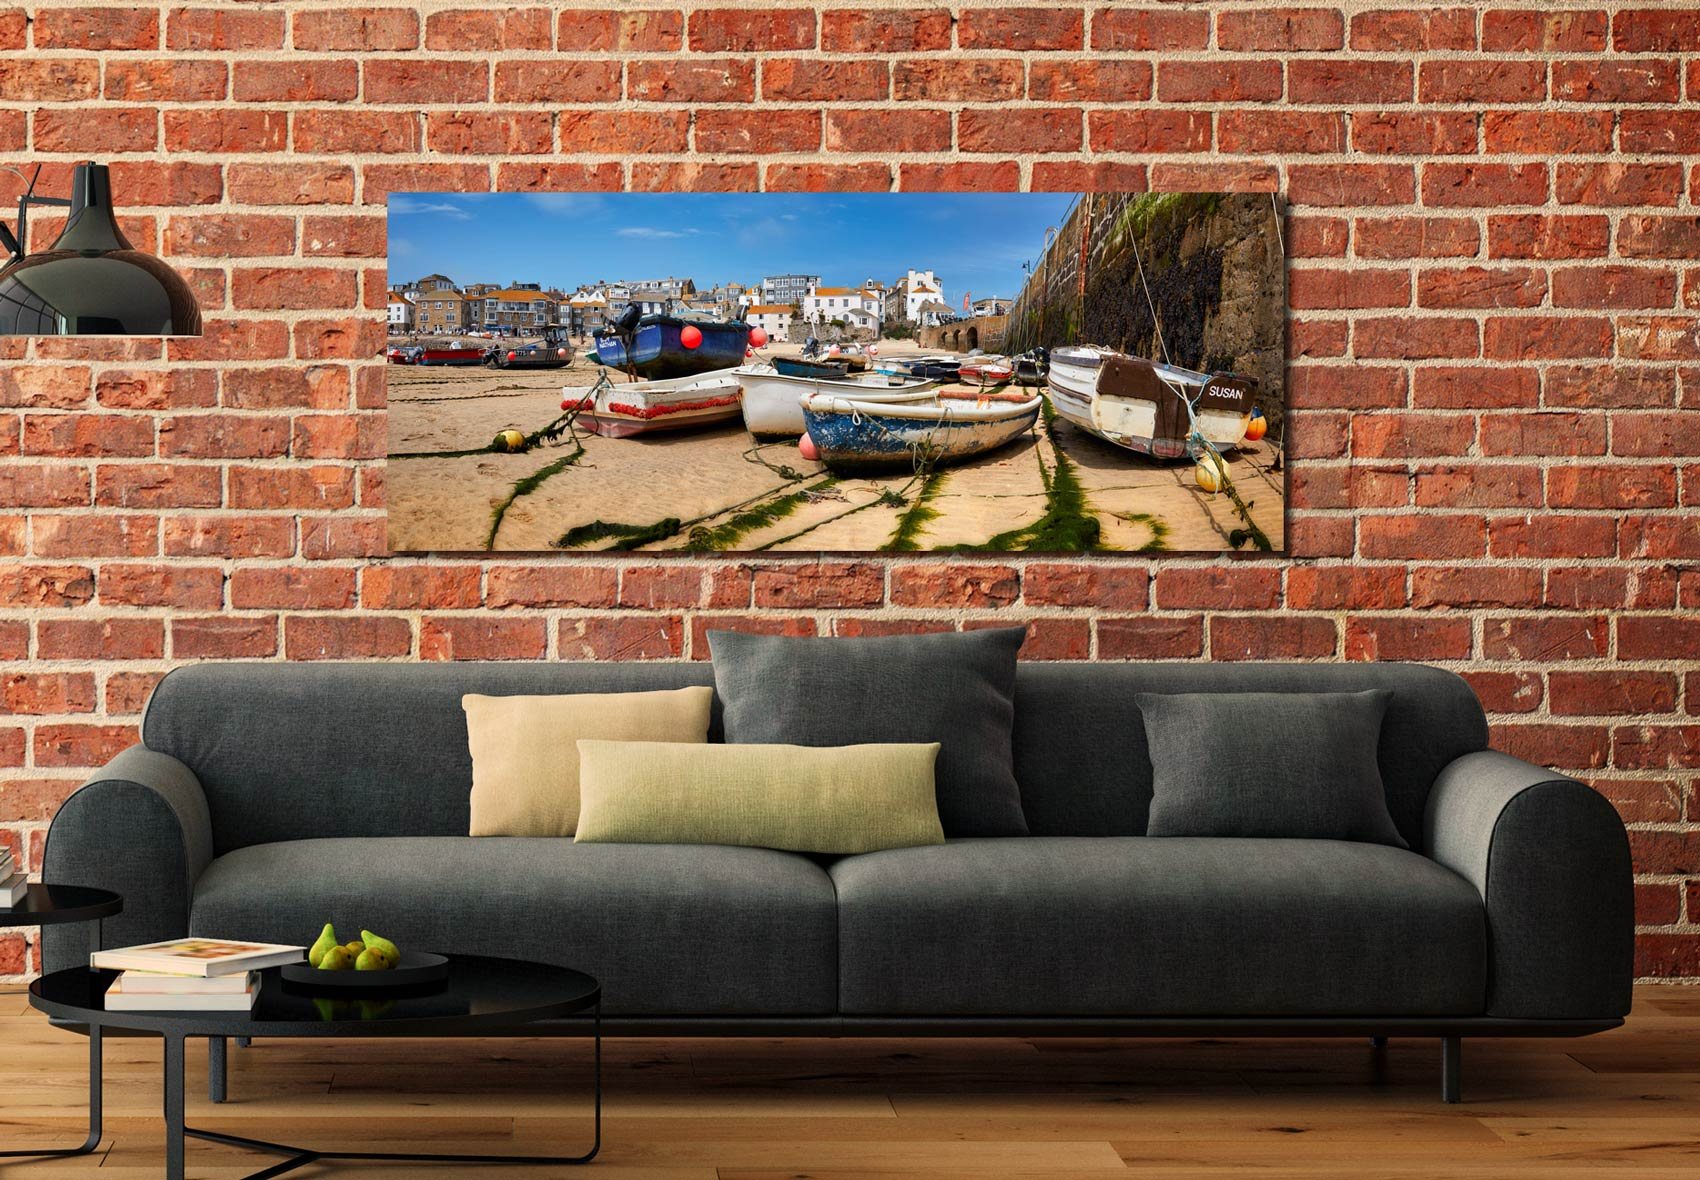 Boats on the sands of St Ives harbour - Print Aluminium Backing With Acrylic Glazing on Wall